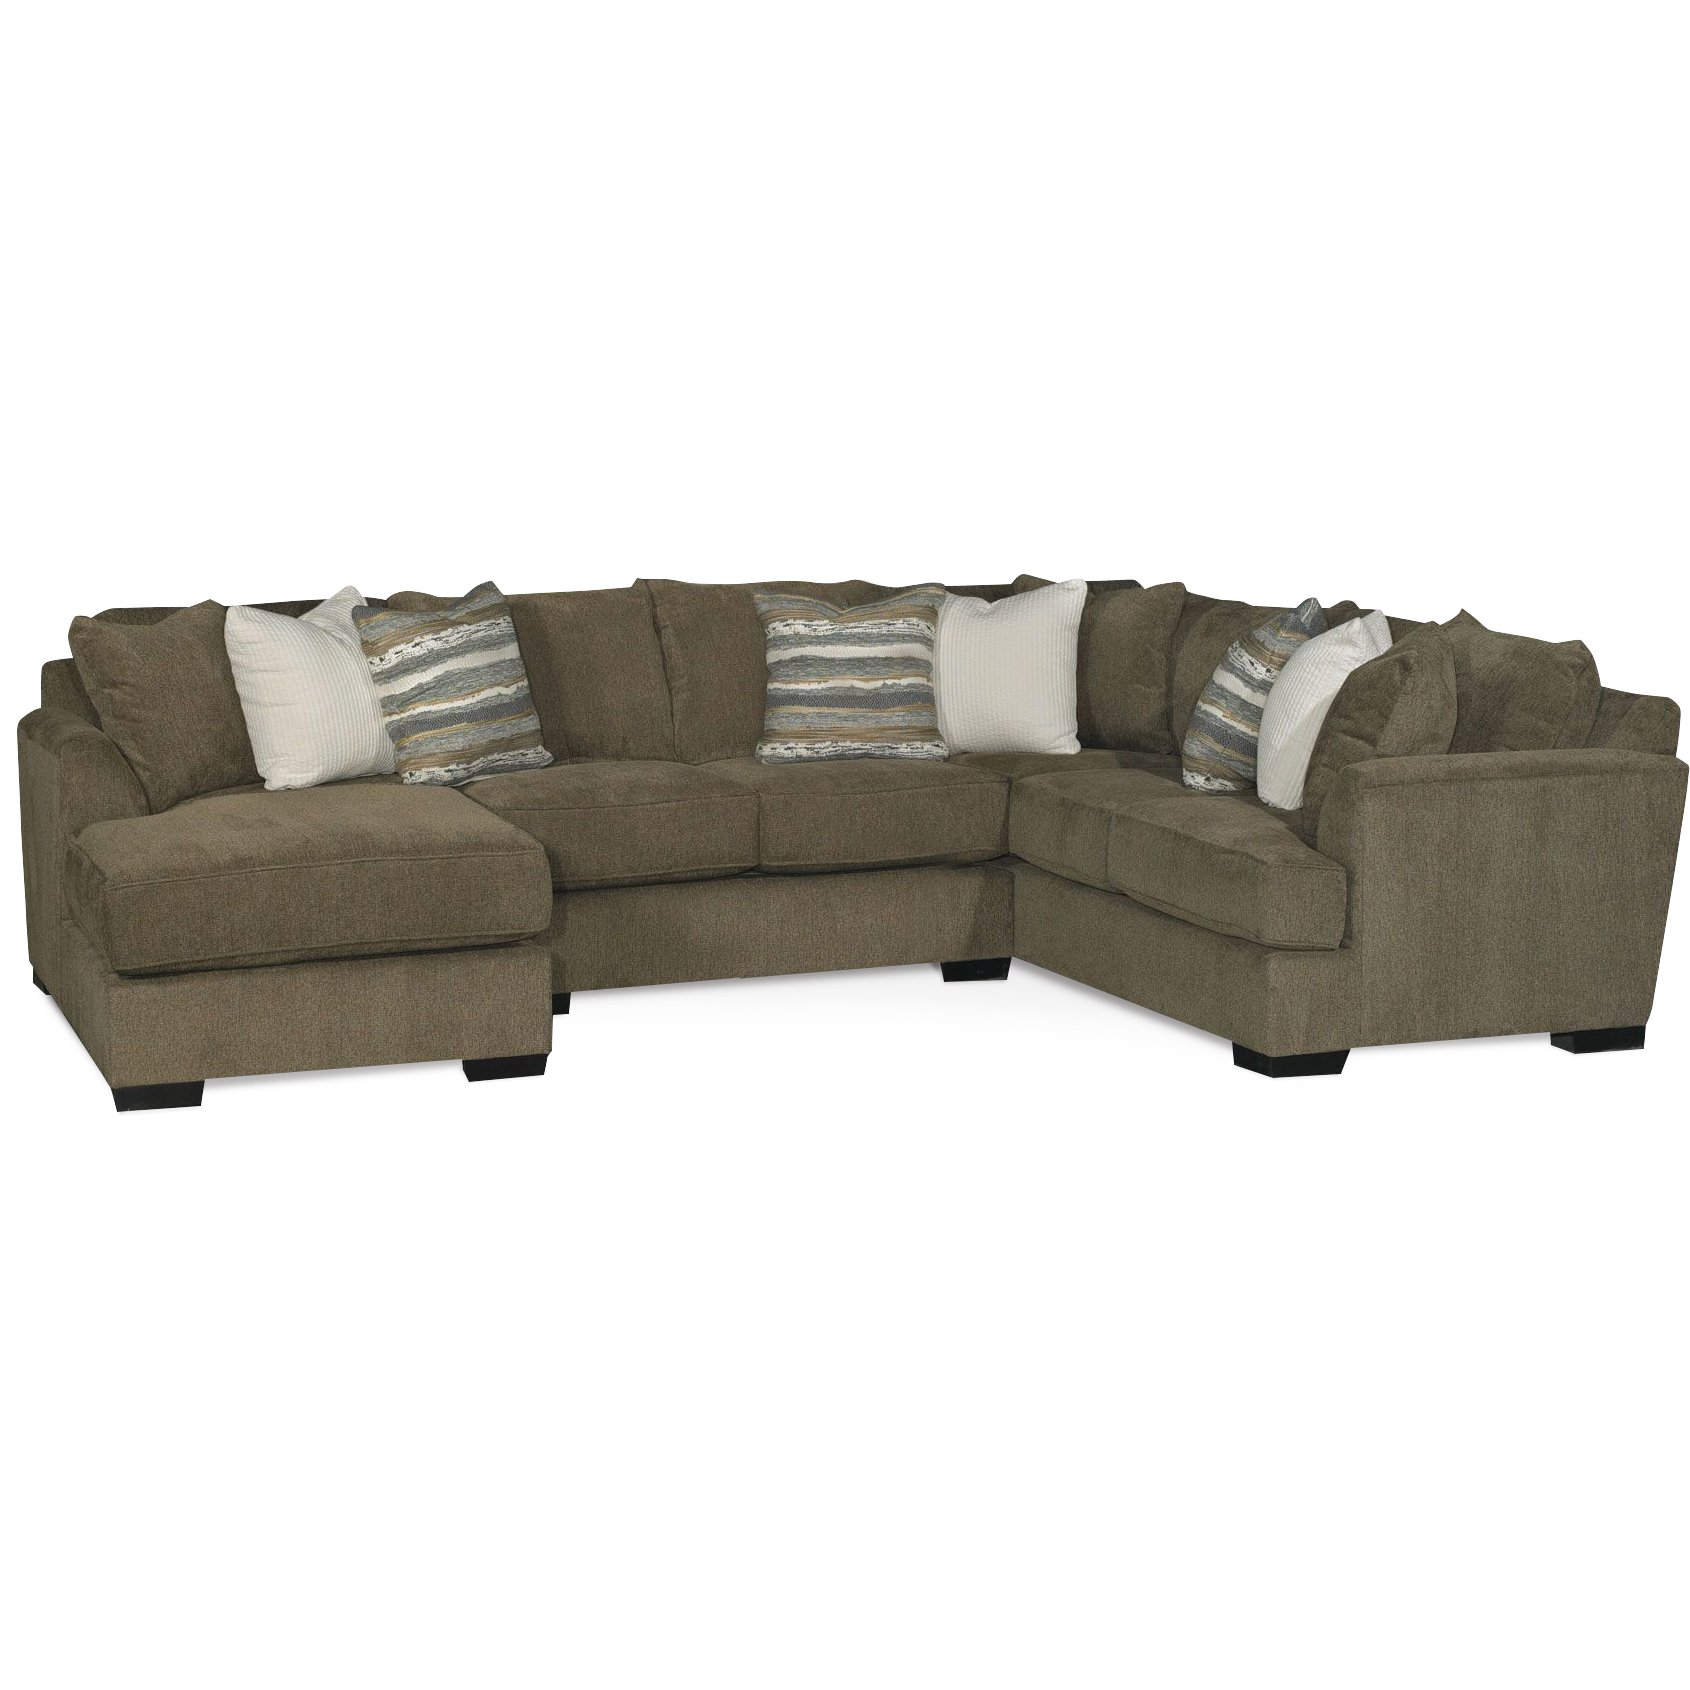 Sofa Bed Express Delivery Shop Fabric Sectionals Living Room Furniture Store Rc Willey